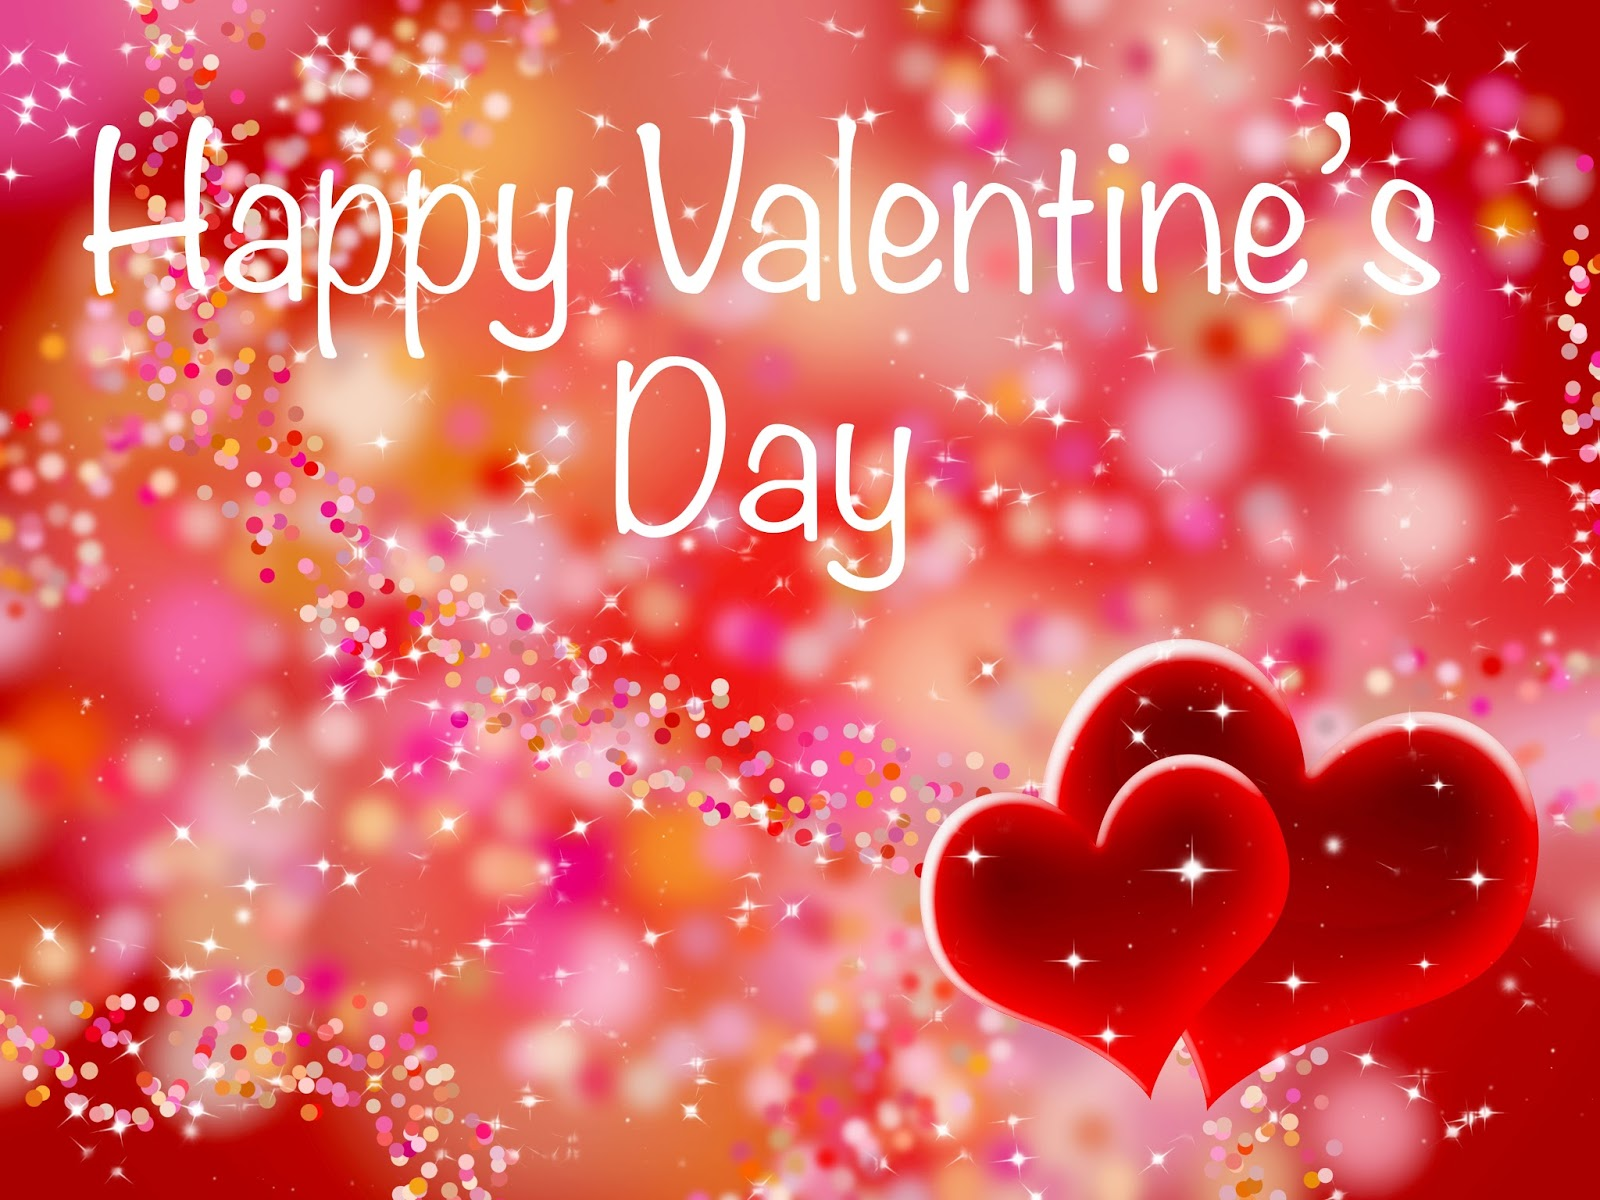 Happy Valentine Day 2017 Pictures, Images & Photos Free Download